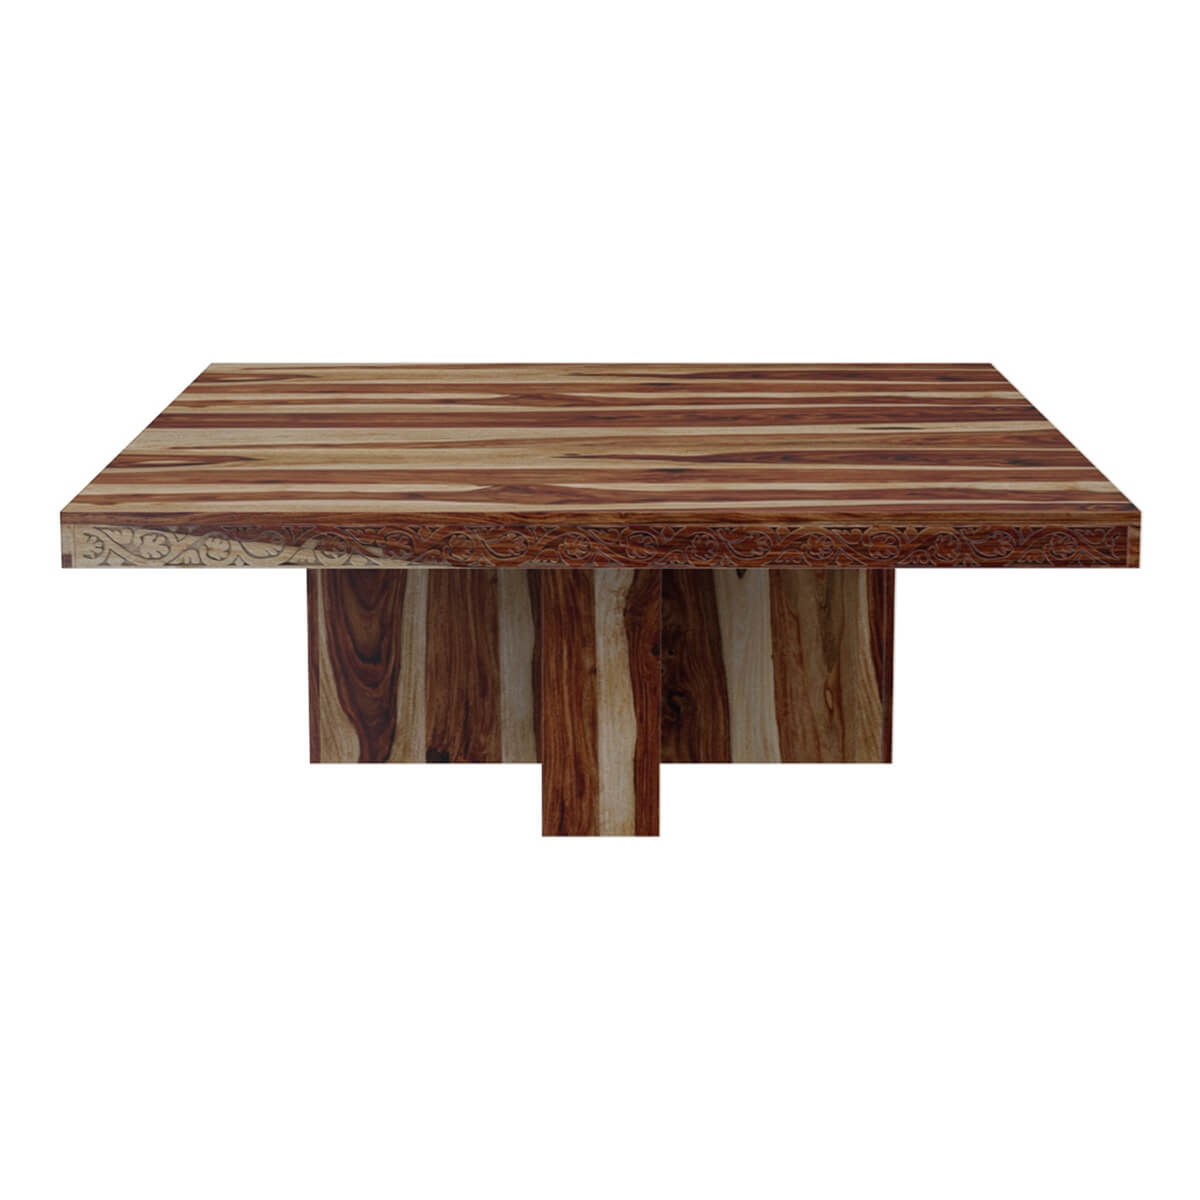 Dallas ranch solid wood pedestal rustic large square for Large dark wood dining table